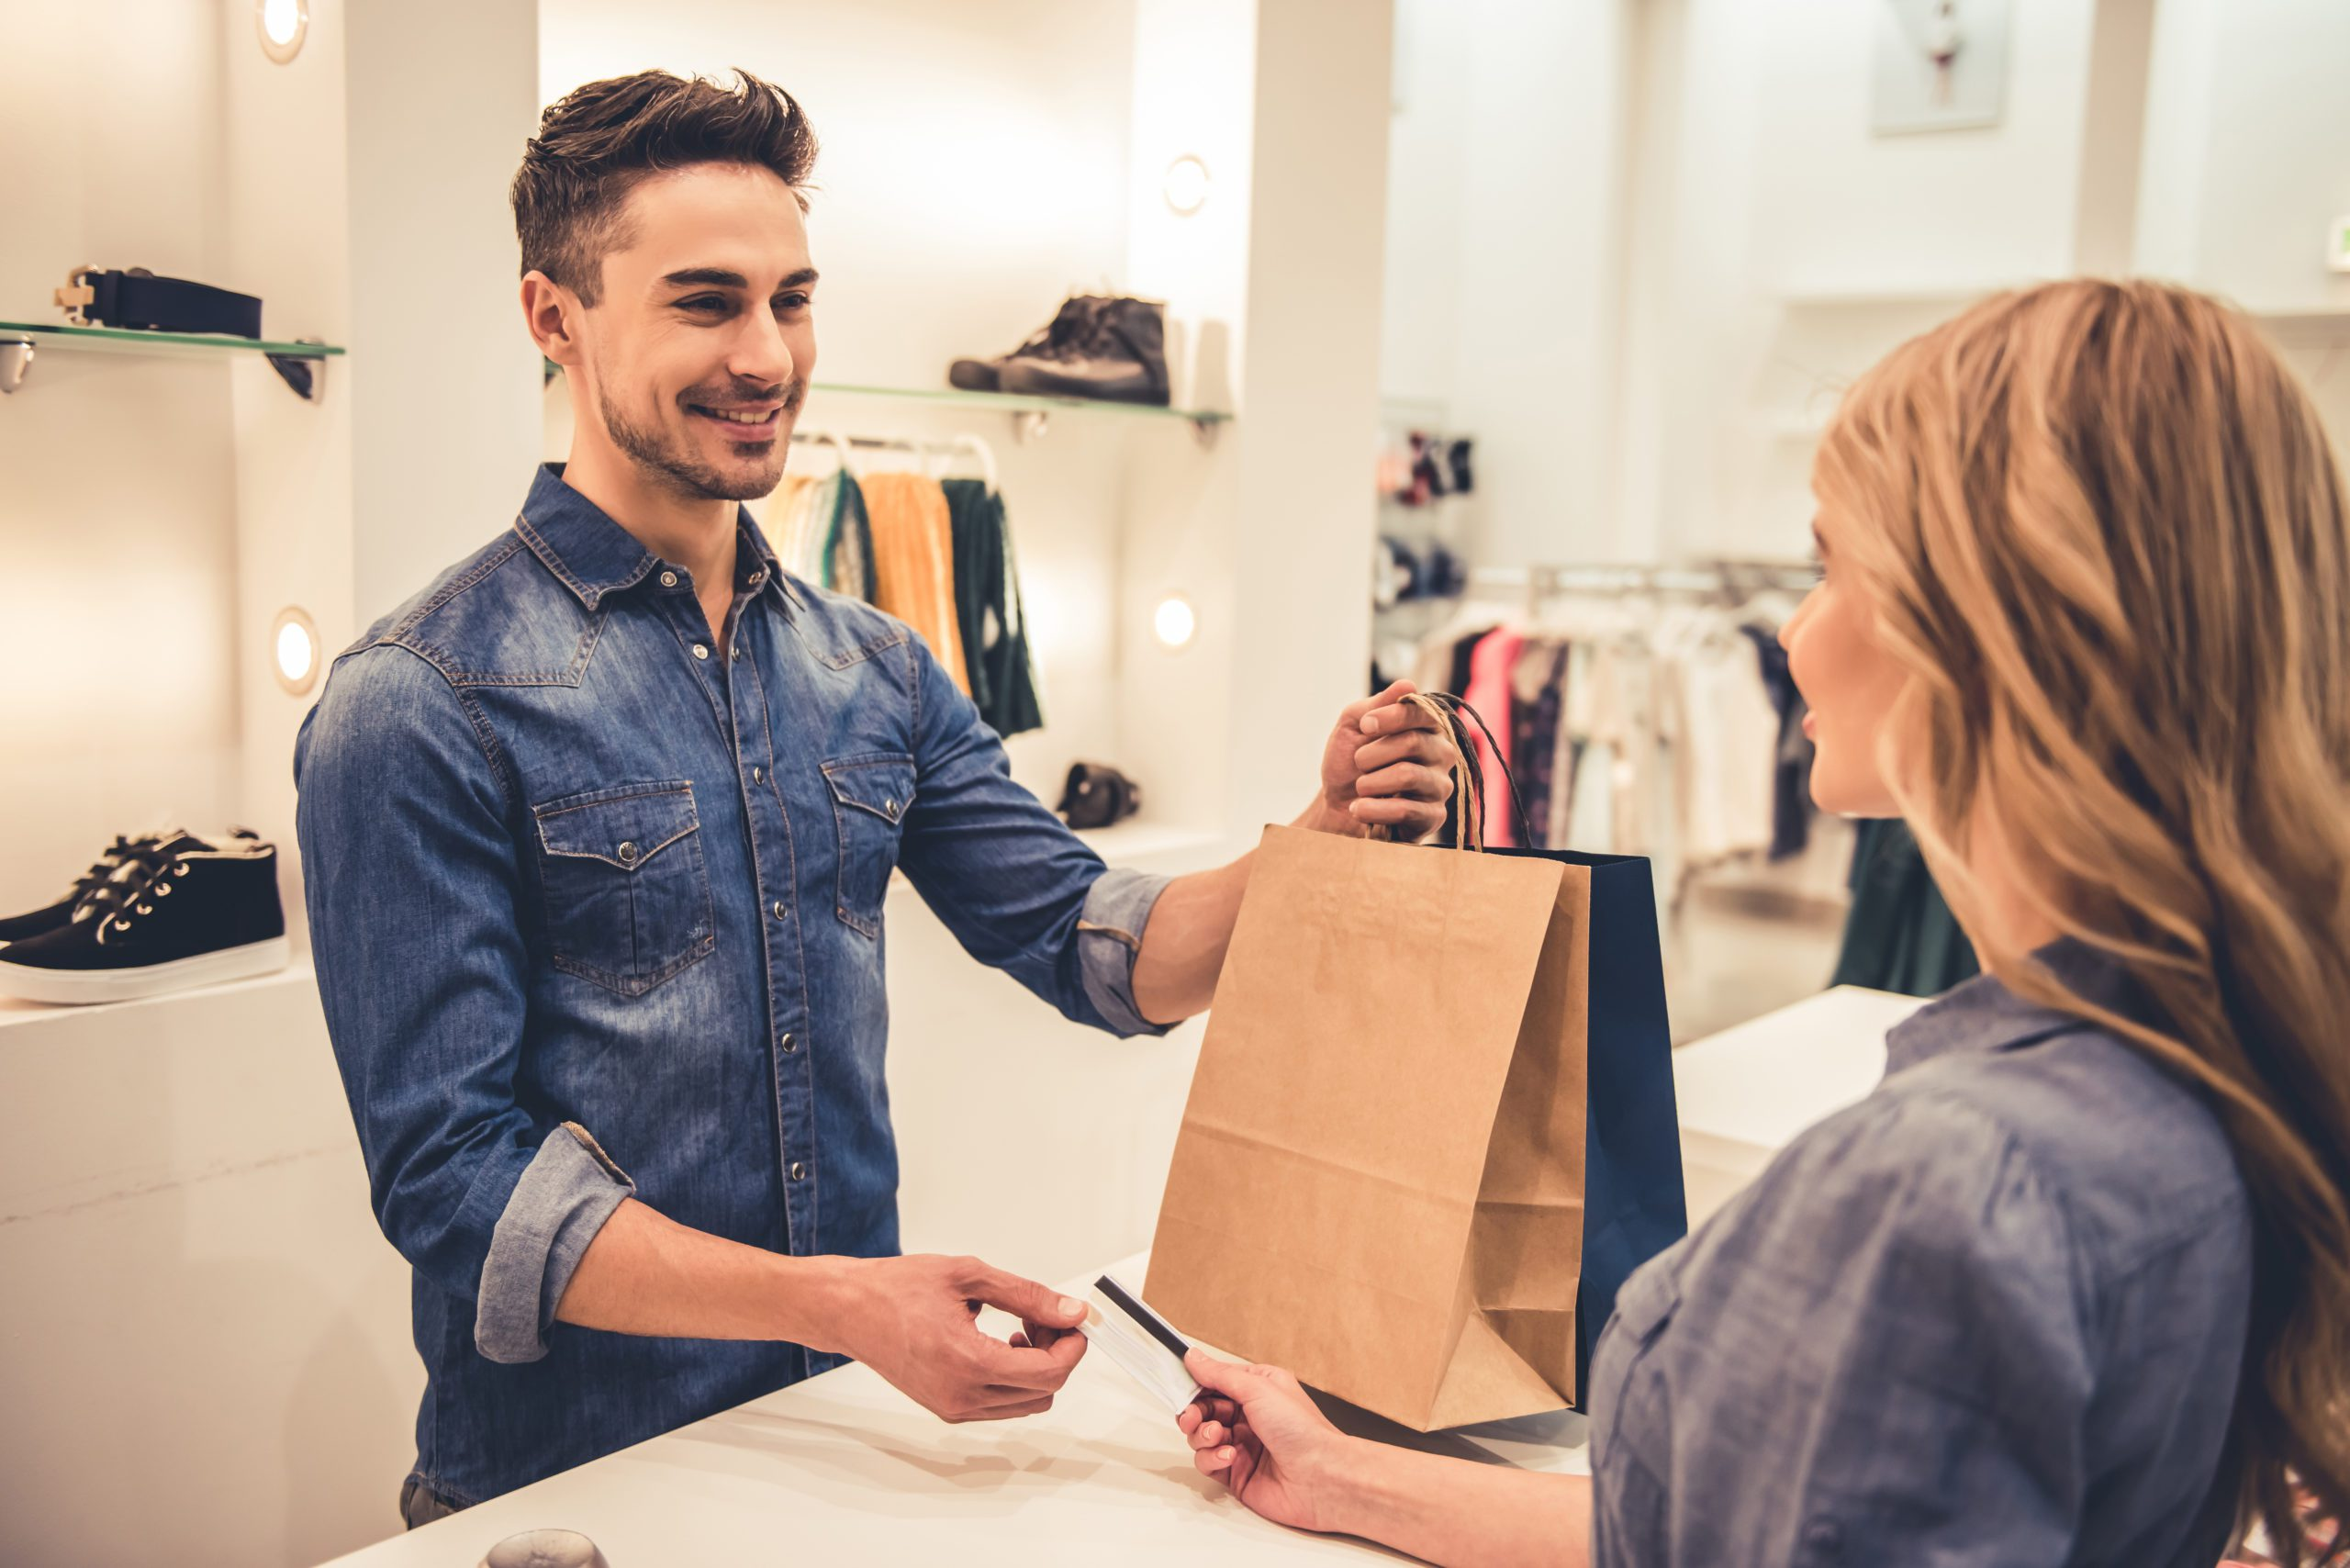 Man smiling while taking shopping bags and credit card from a female